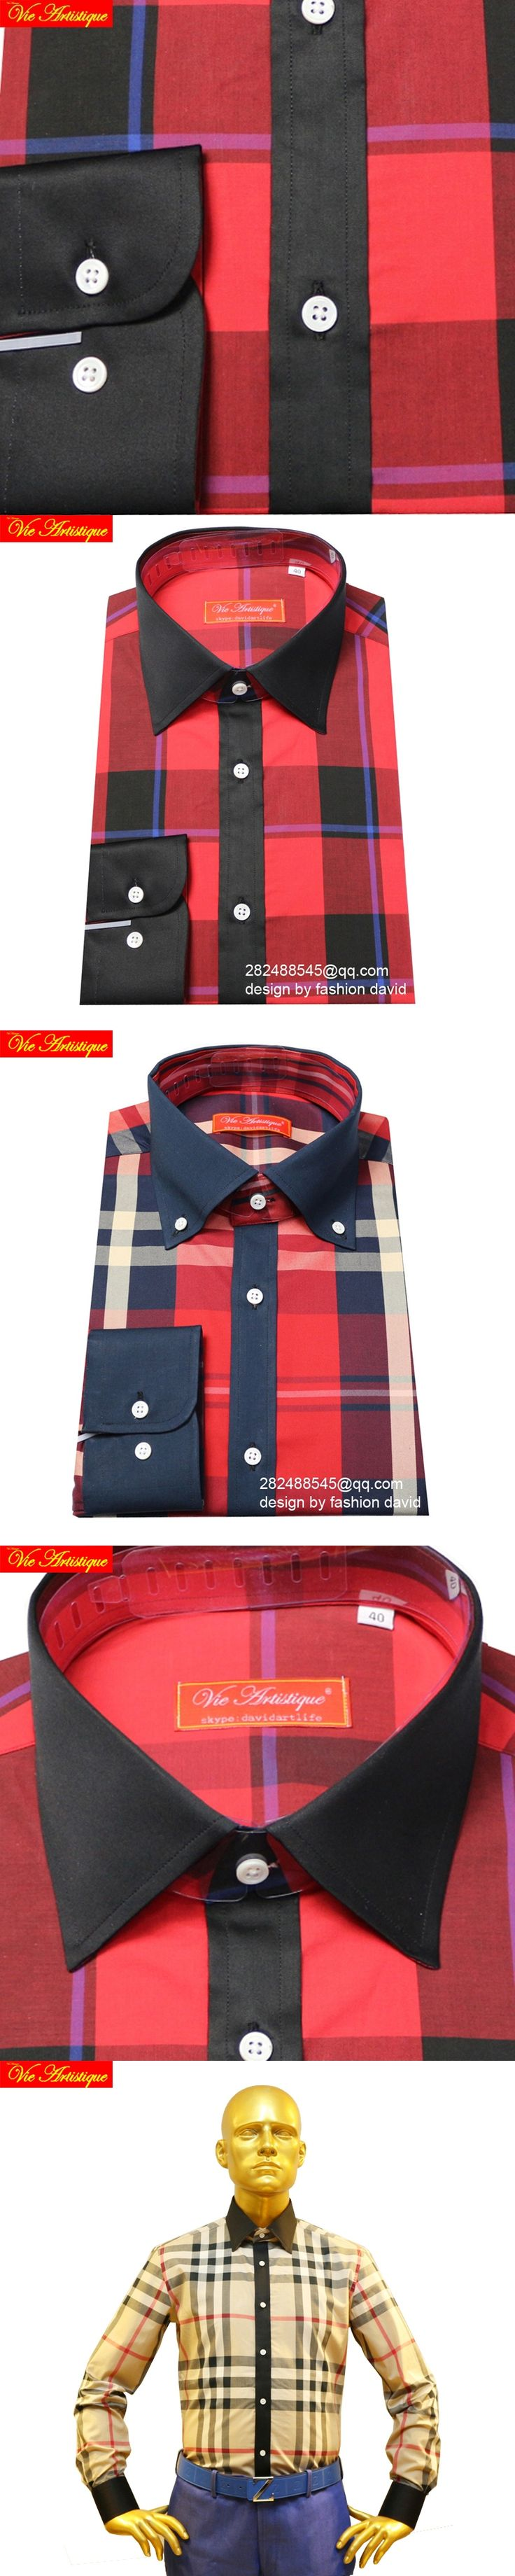 male long sleeve casual dress shirts men's big plus size plaid shirt Scotland red checked 100% cotton high quality tailored 2018